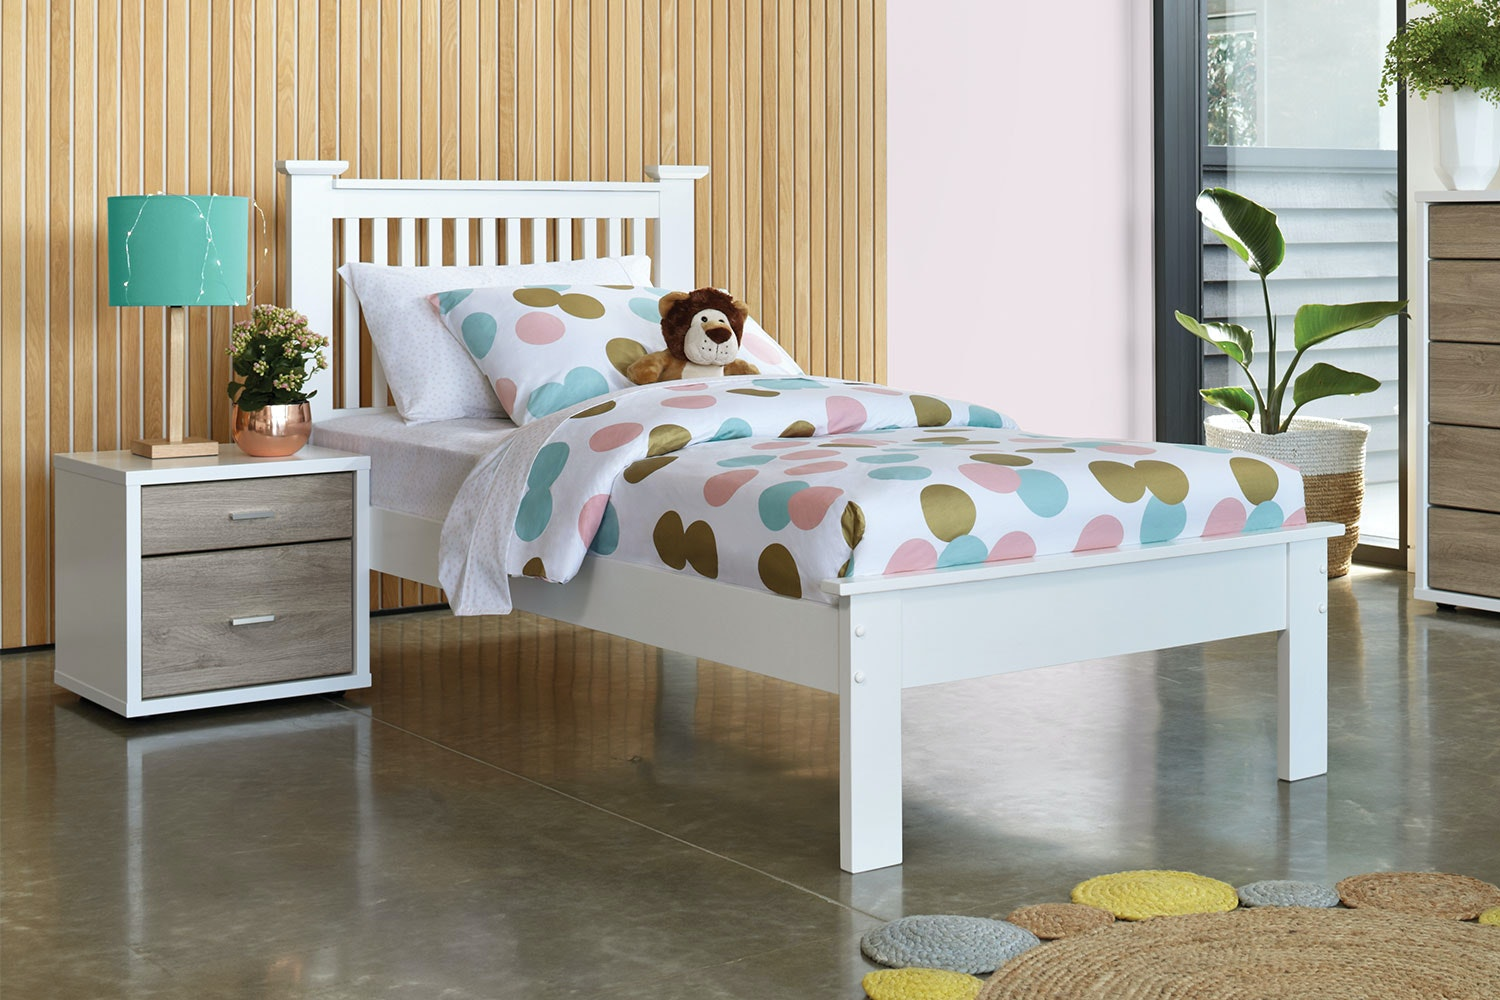 Exceptionnel White Aston King Single Bed Frame By Nero Furniture ...